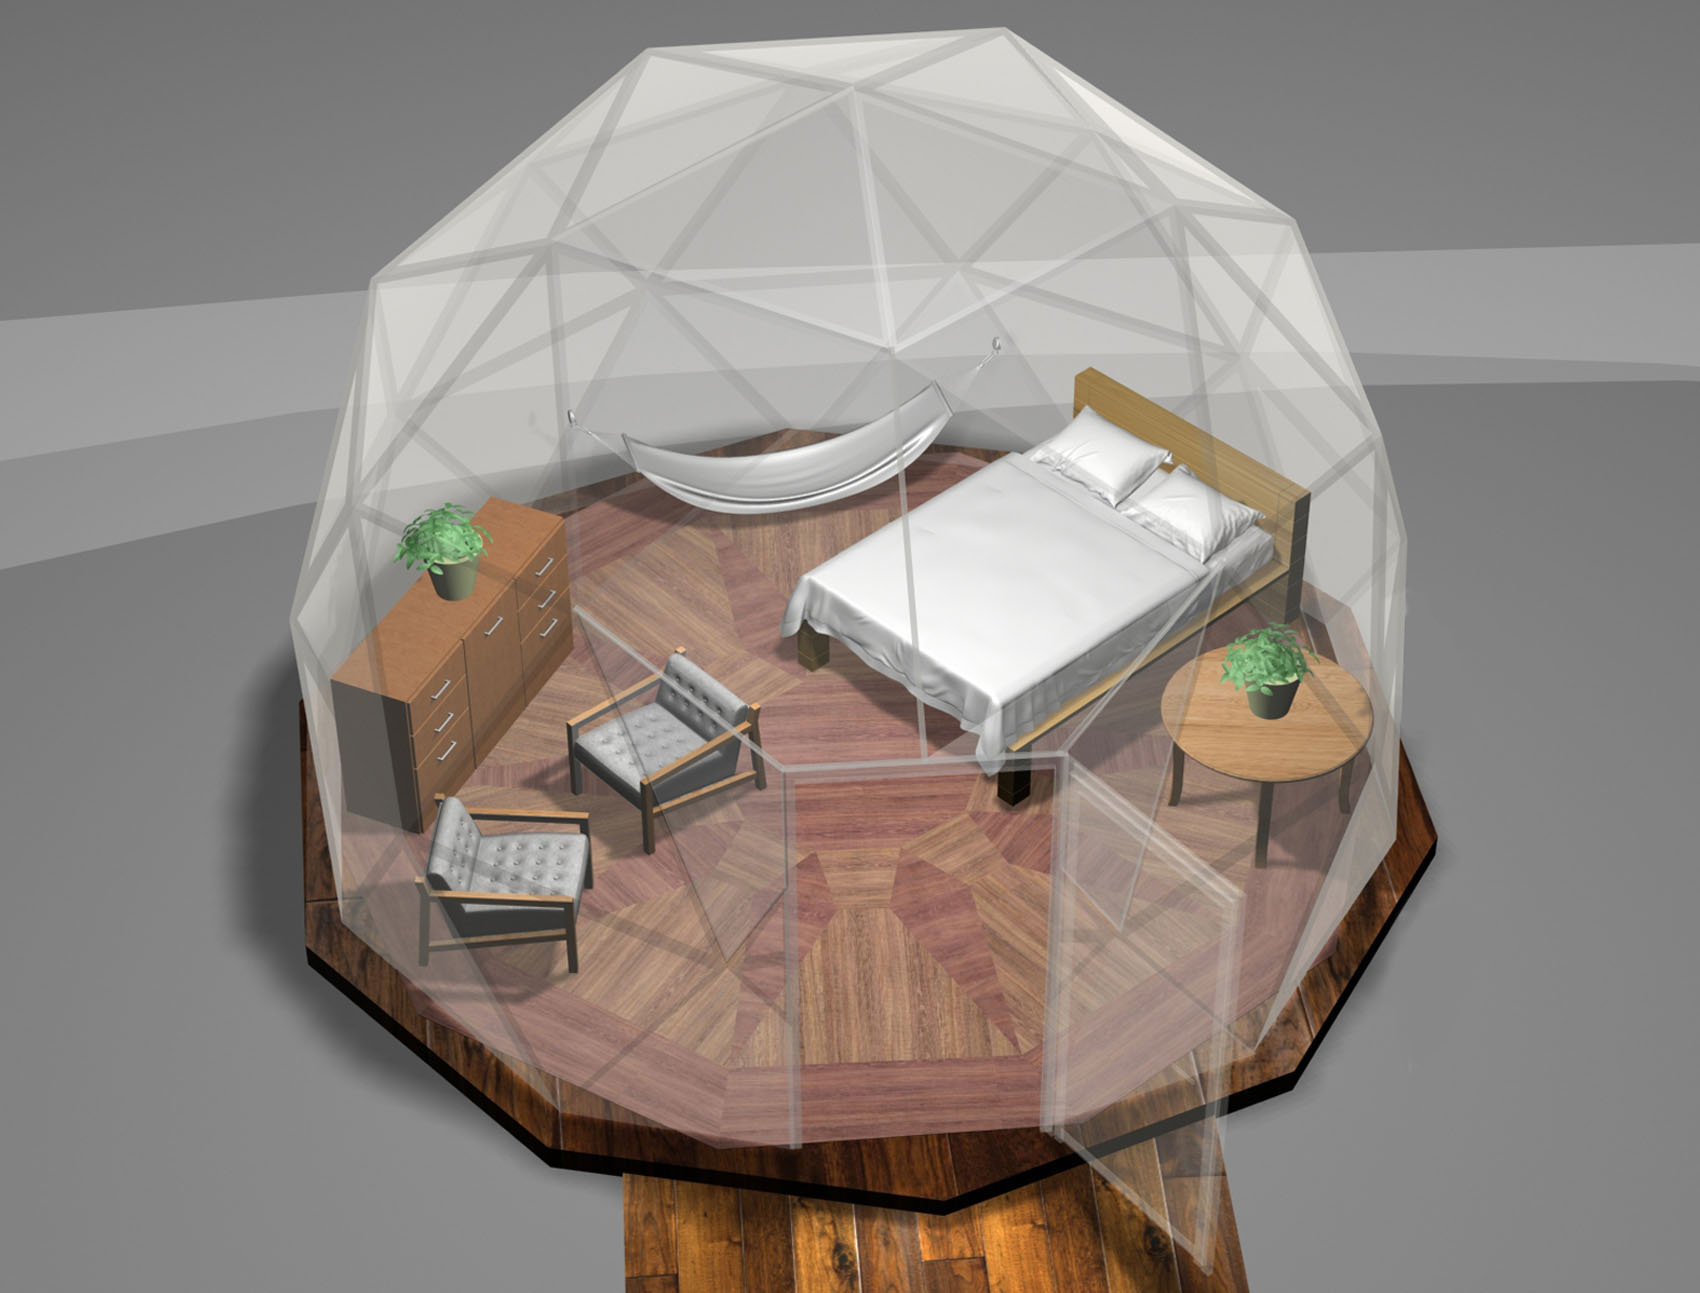 16' tall dome with queen size bed